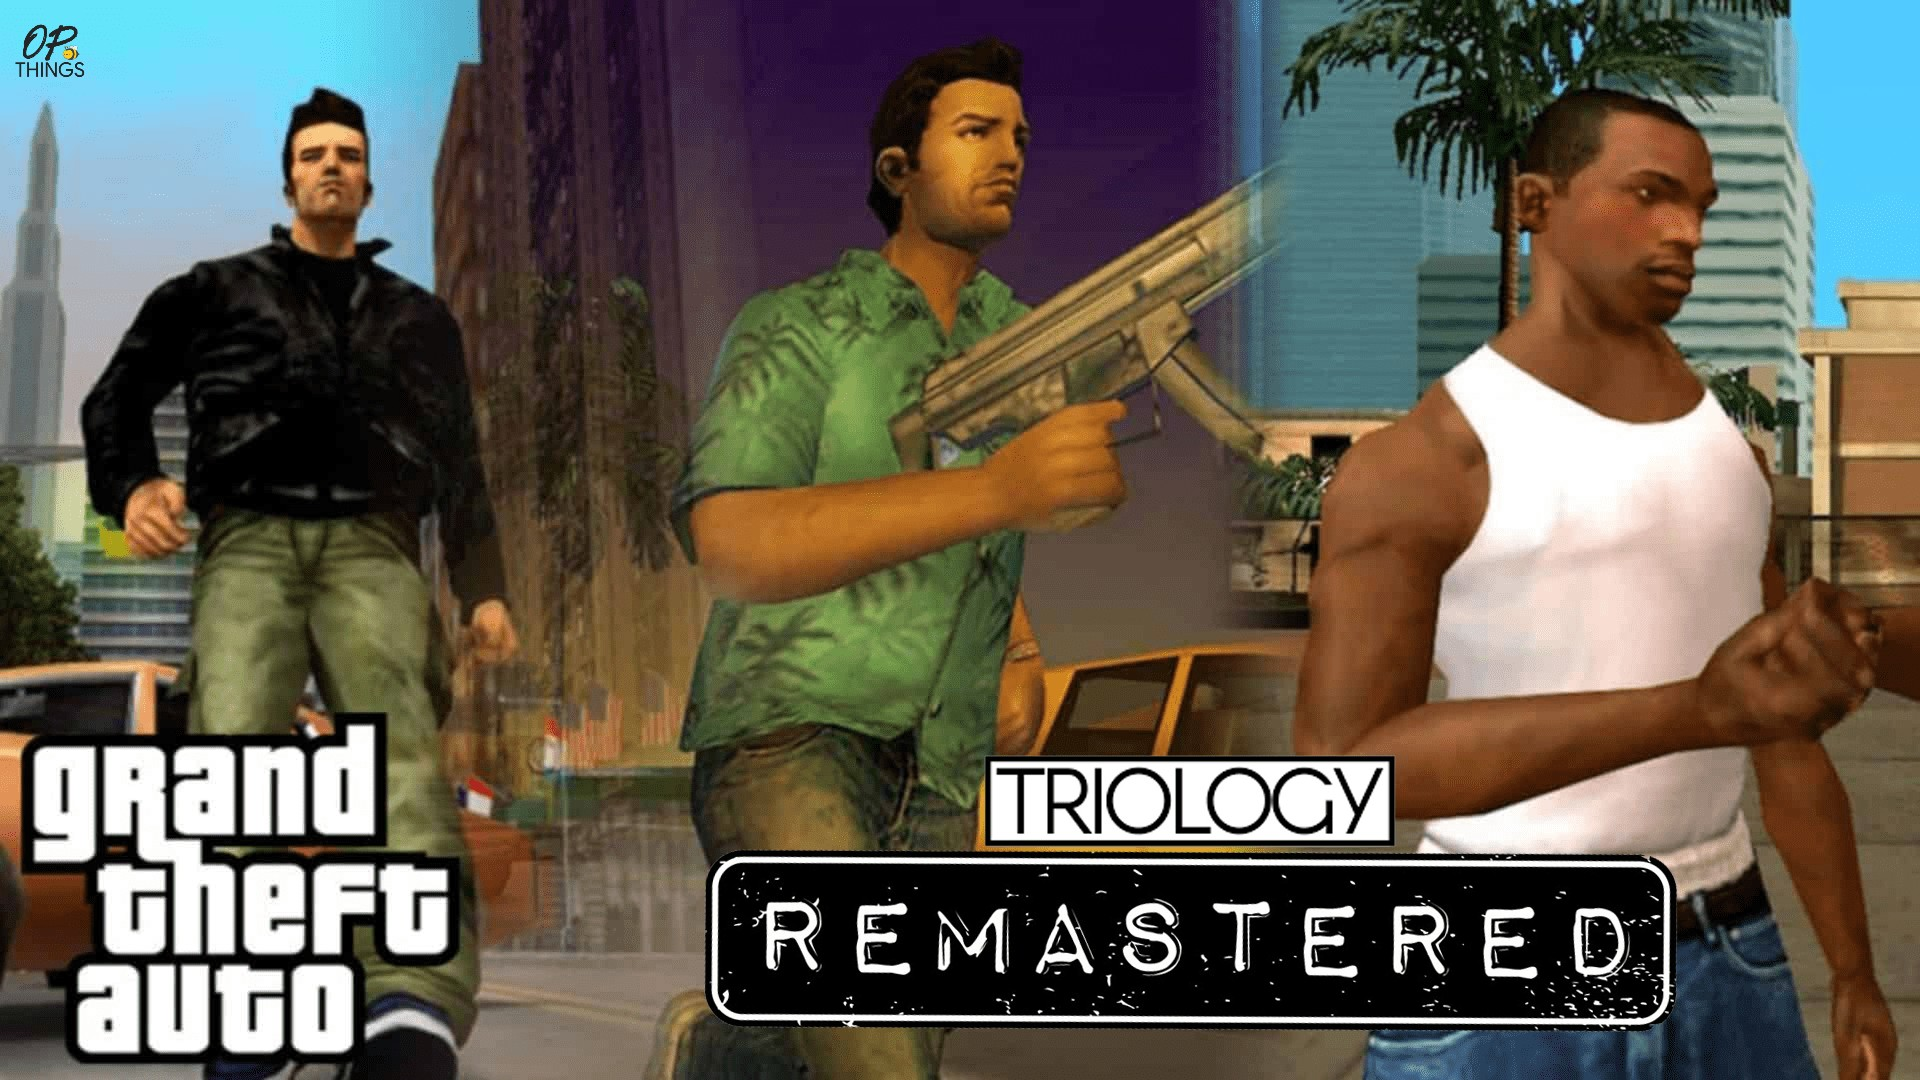 'GTA' Remastered Trilogy Coming in 2021, Rockstar confirms!